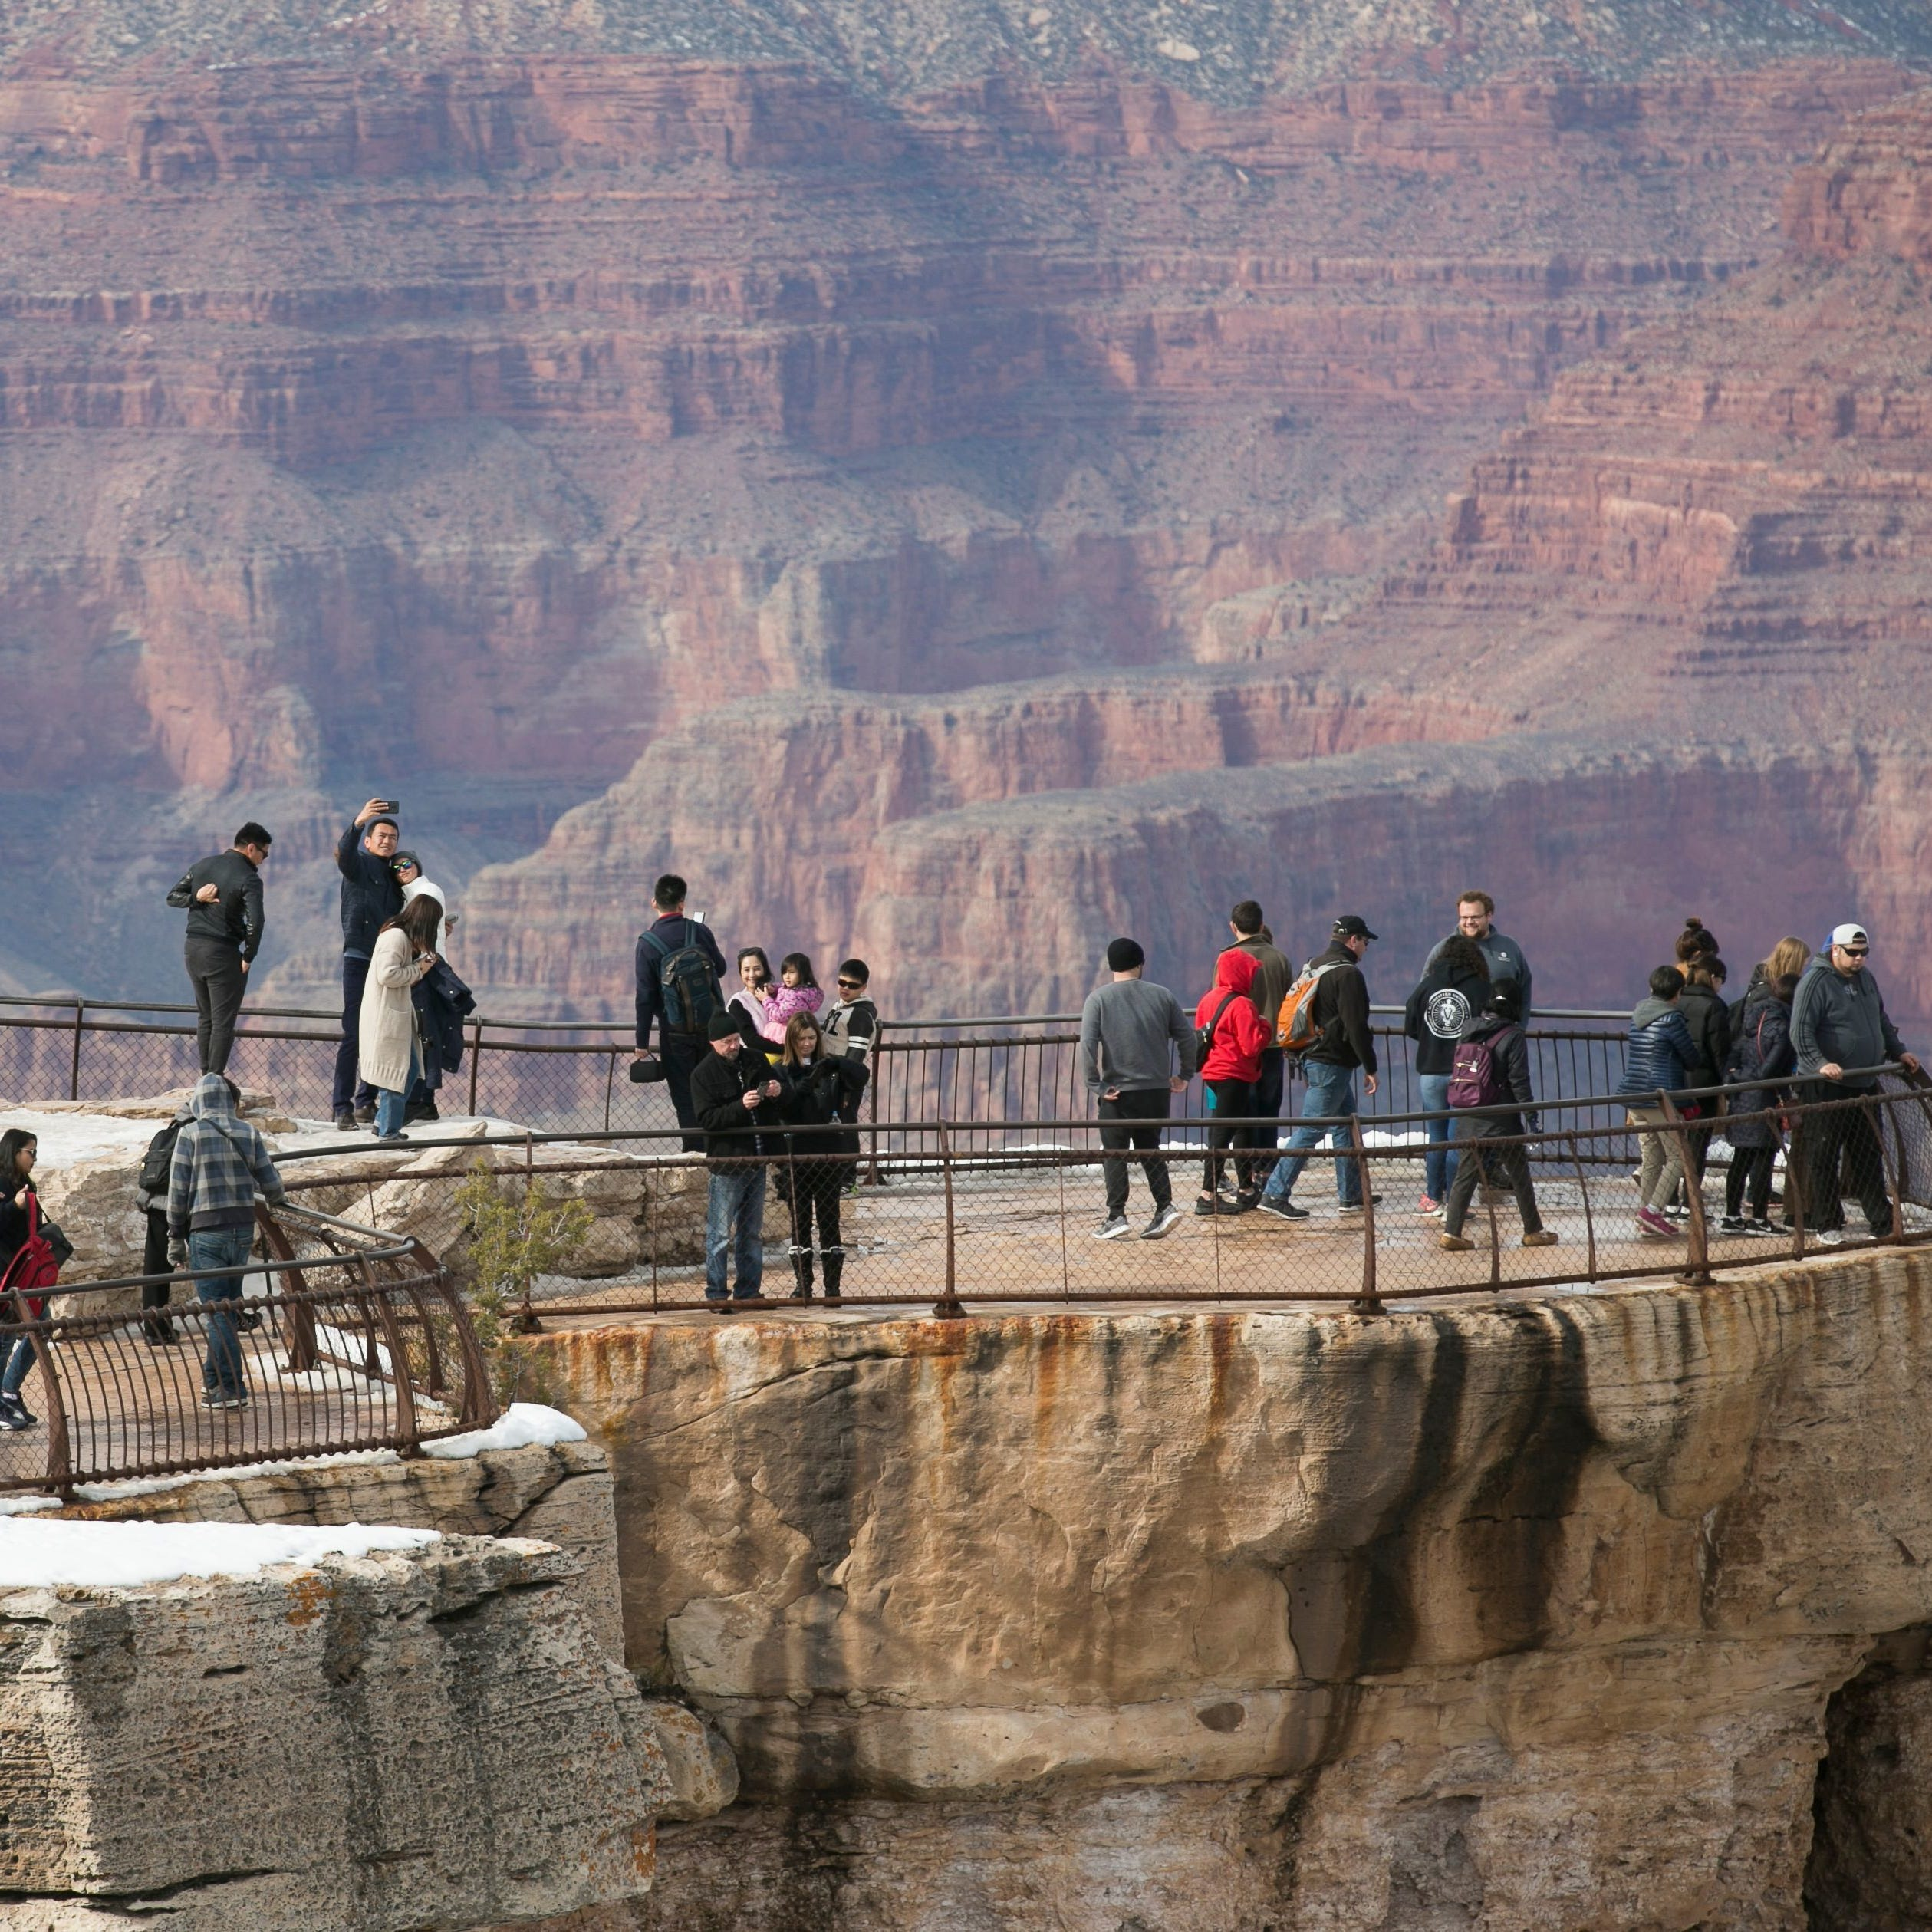 'It takes one bad step': People die at the Grand Canyon because it's a beautiful, dangerous place